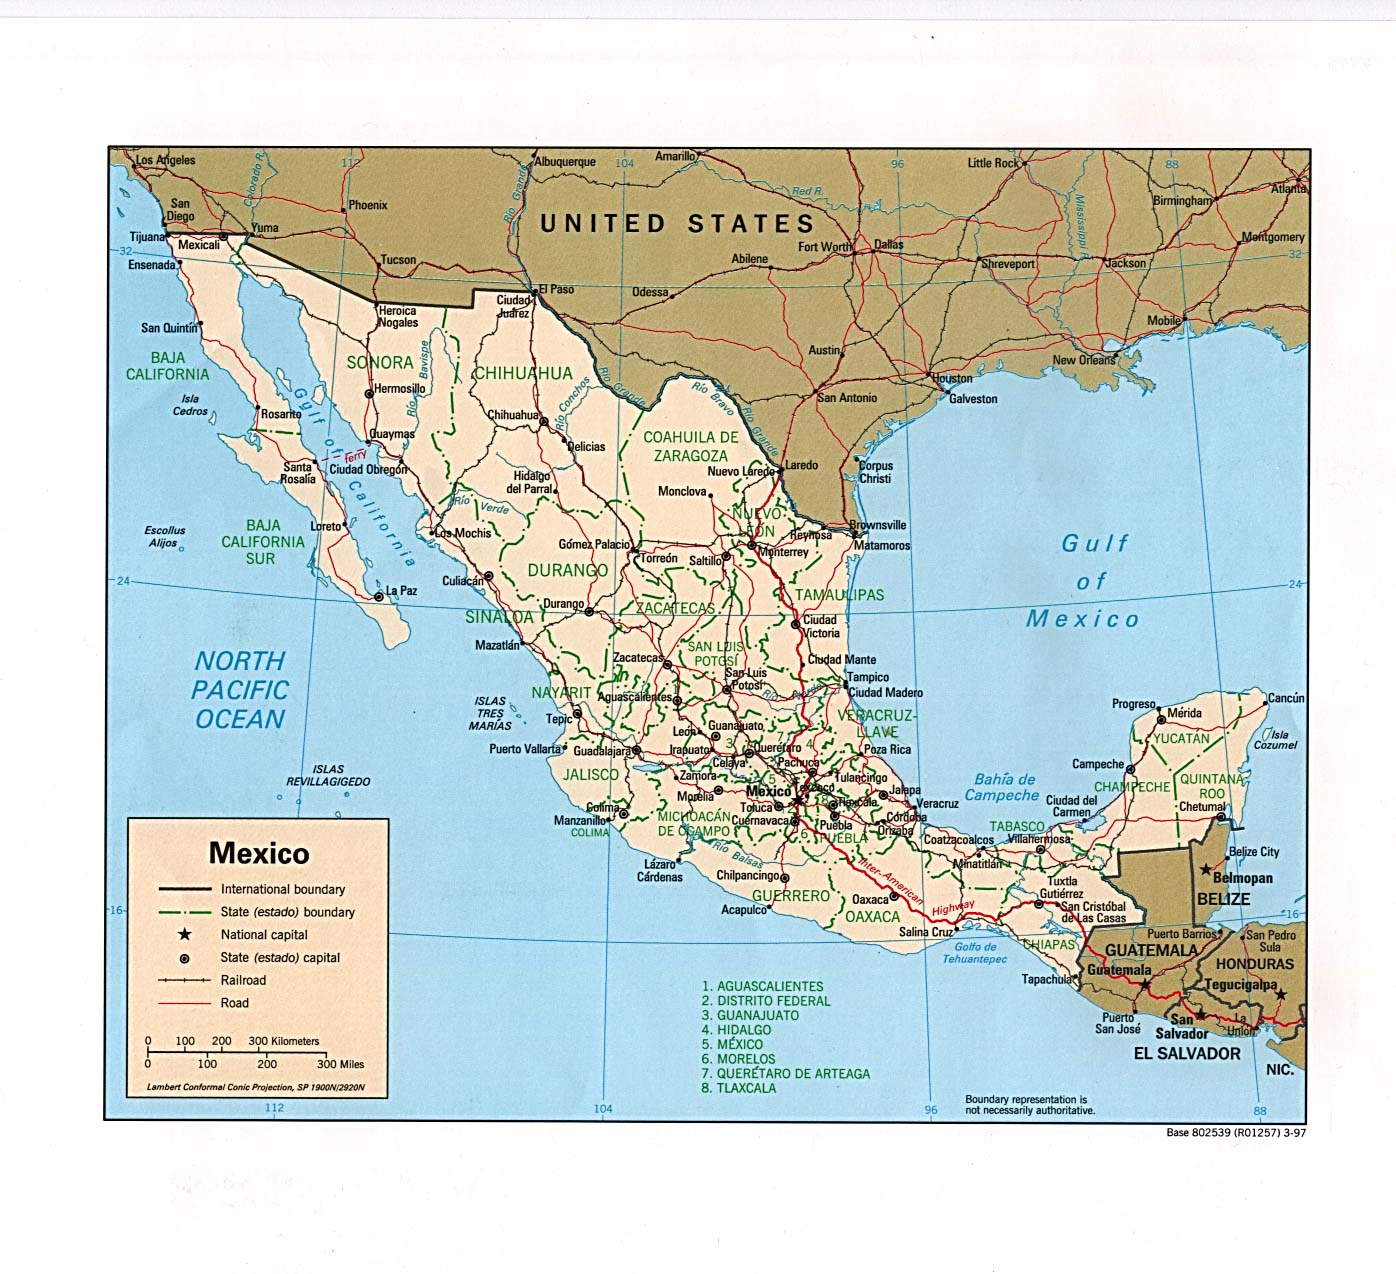 Map Of Us Mexico Border Crossings.Photographs